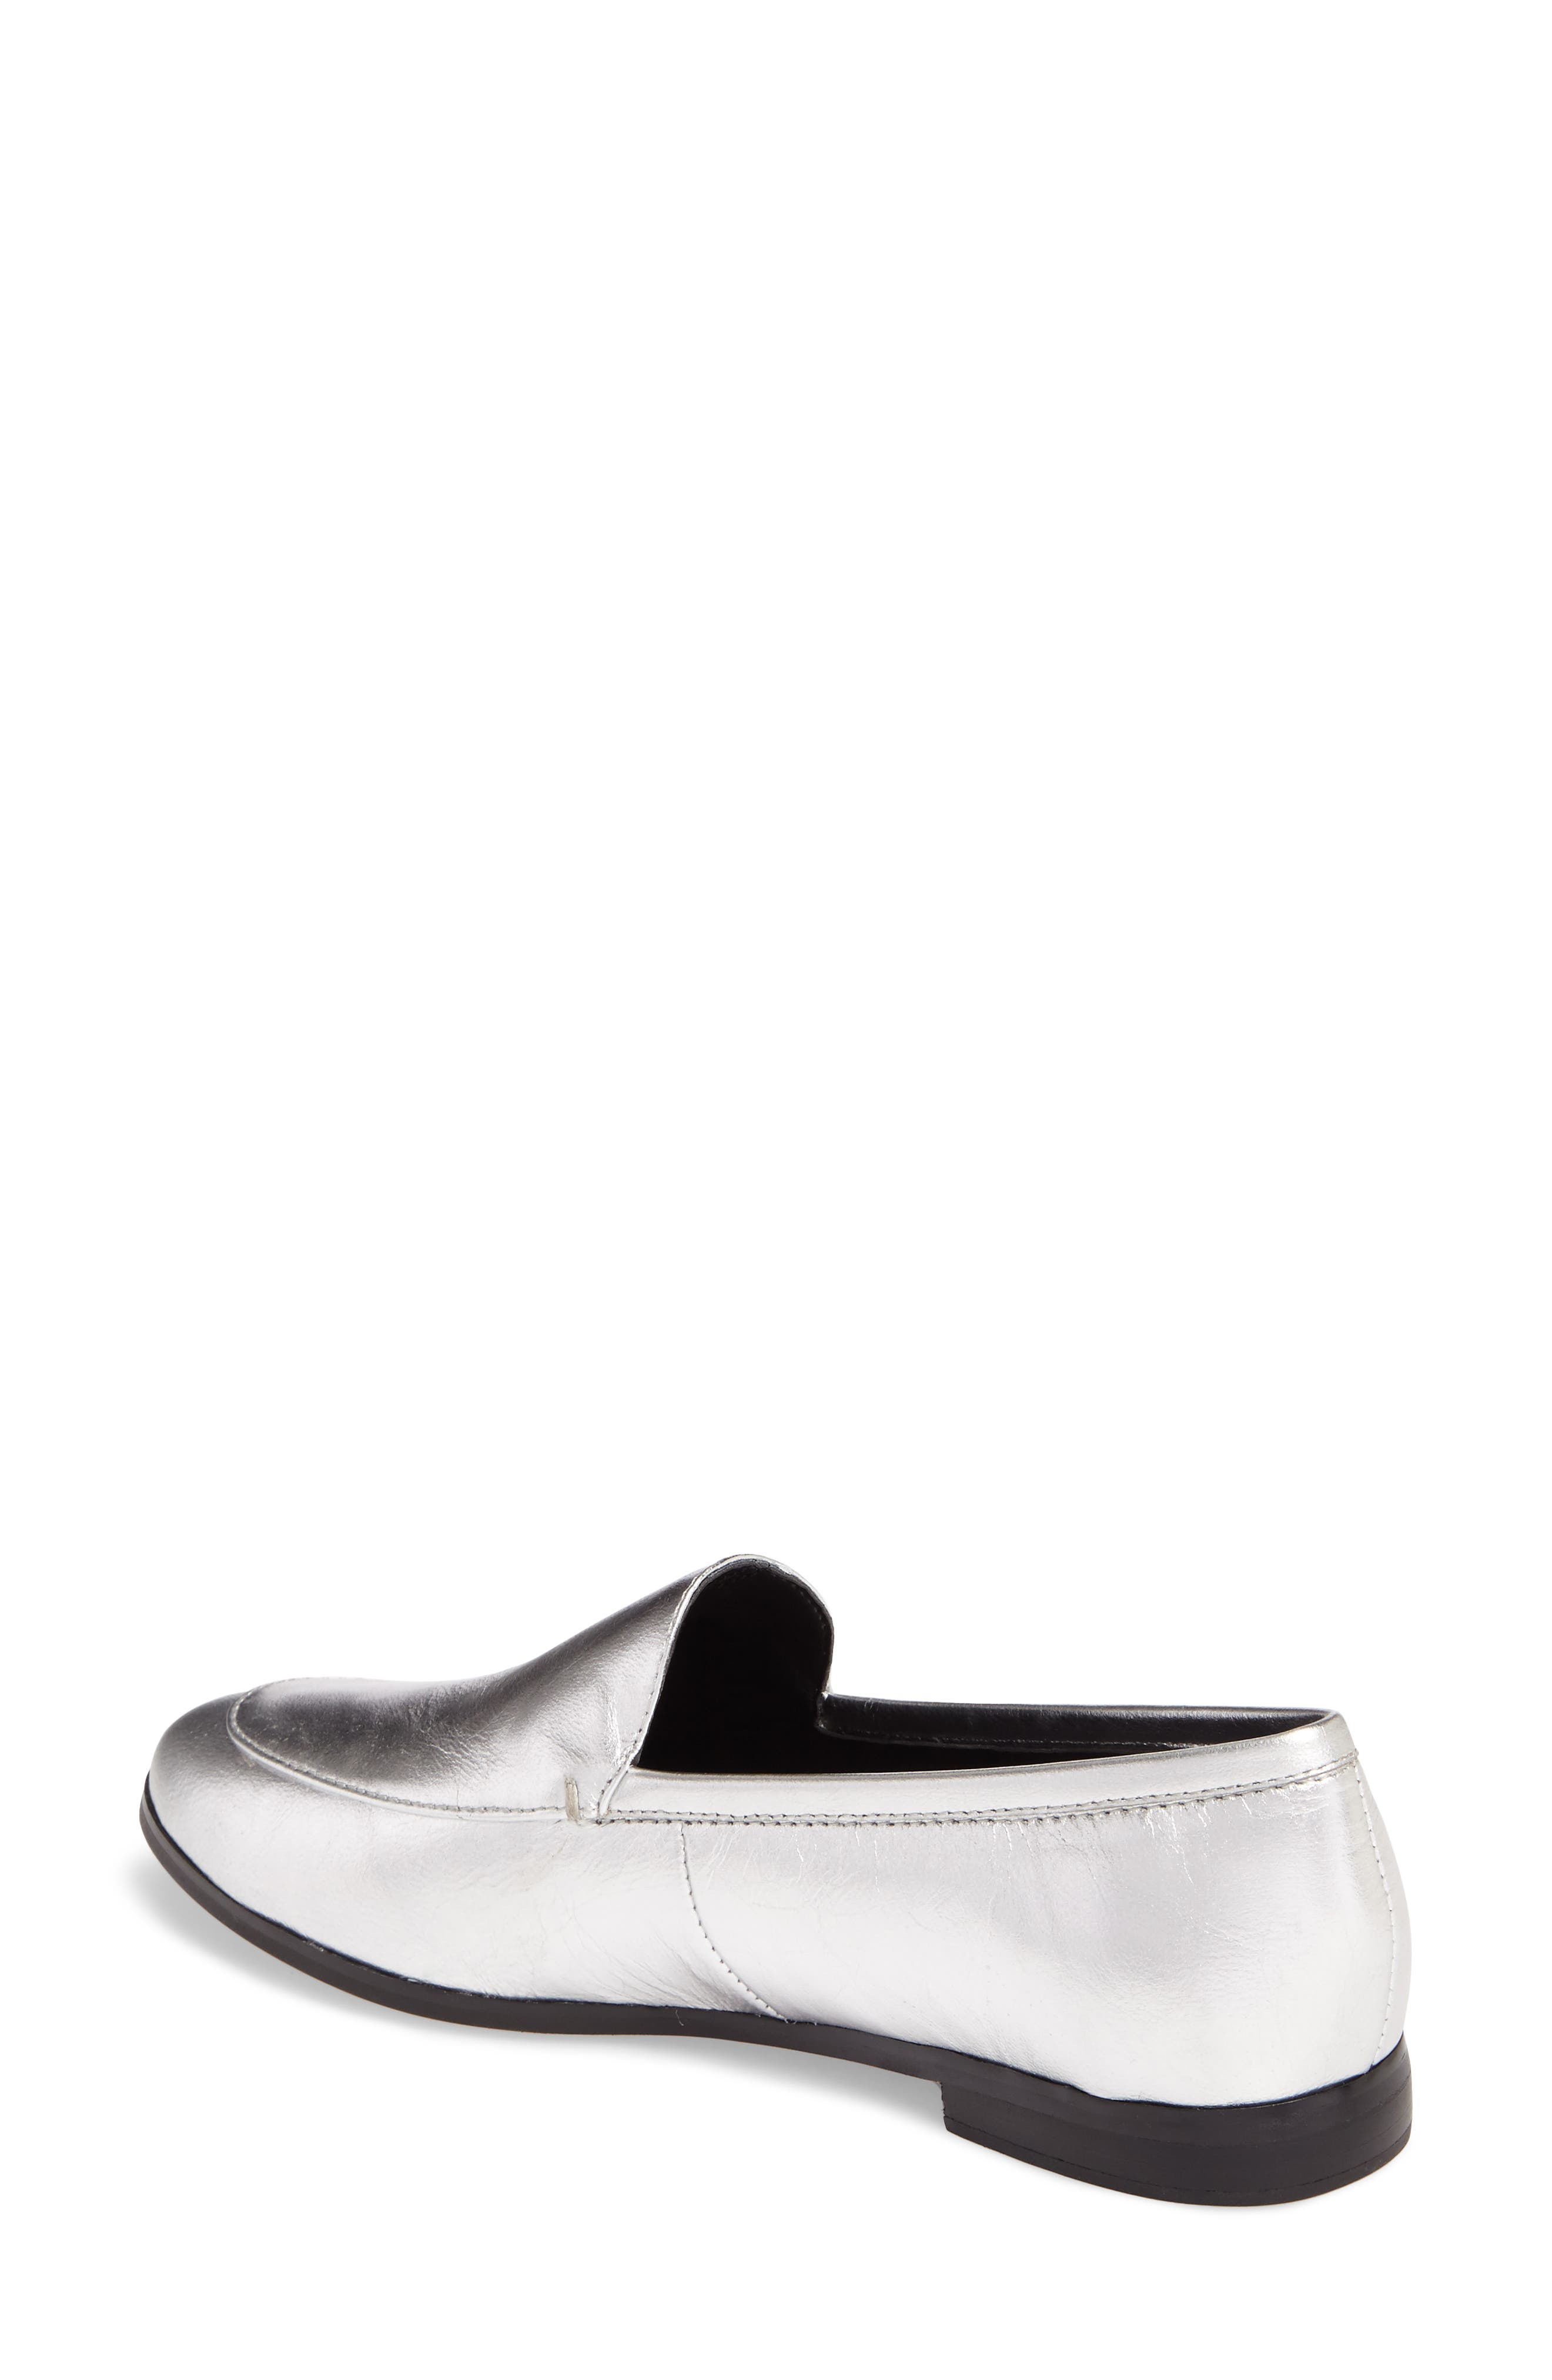 Dylan Metallic Loafer,                             Alternate thumbnail 2, color,                             040